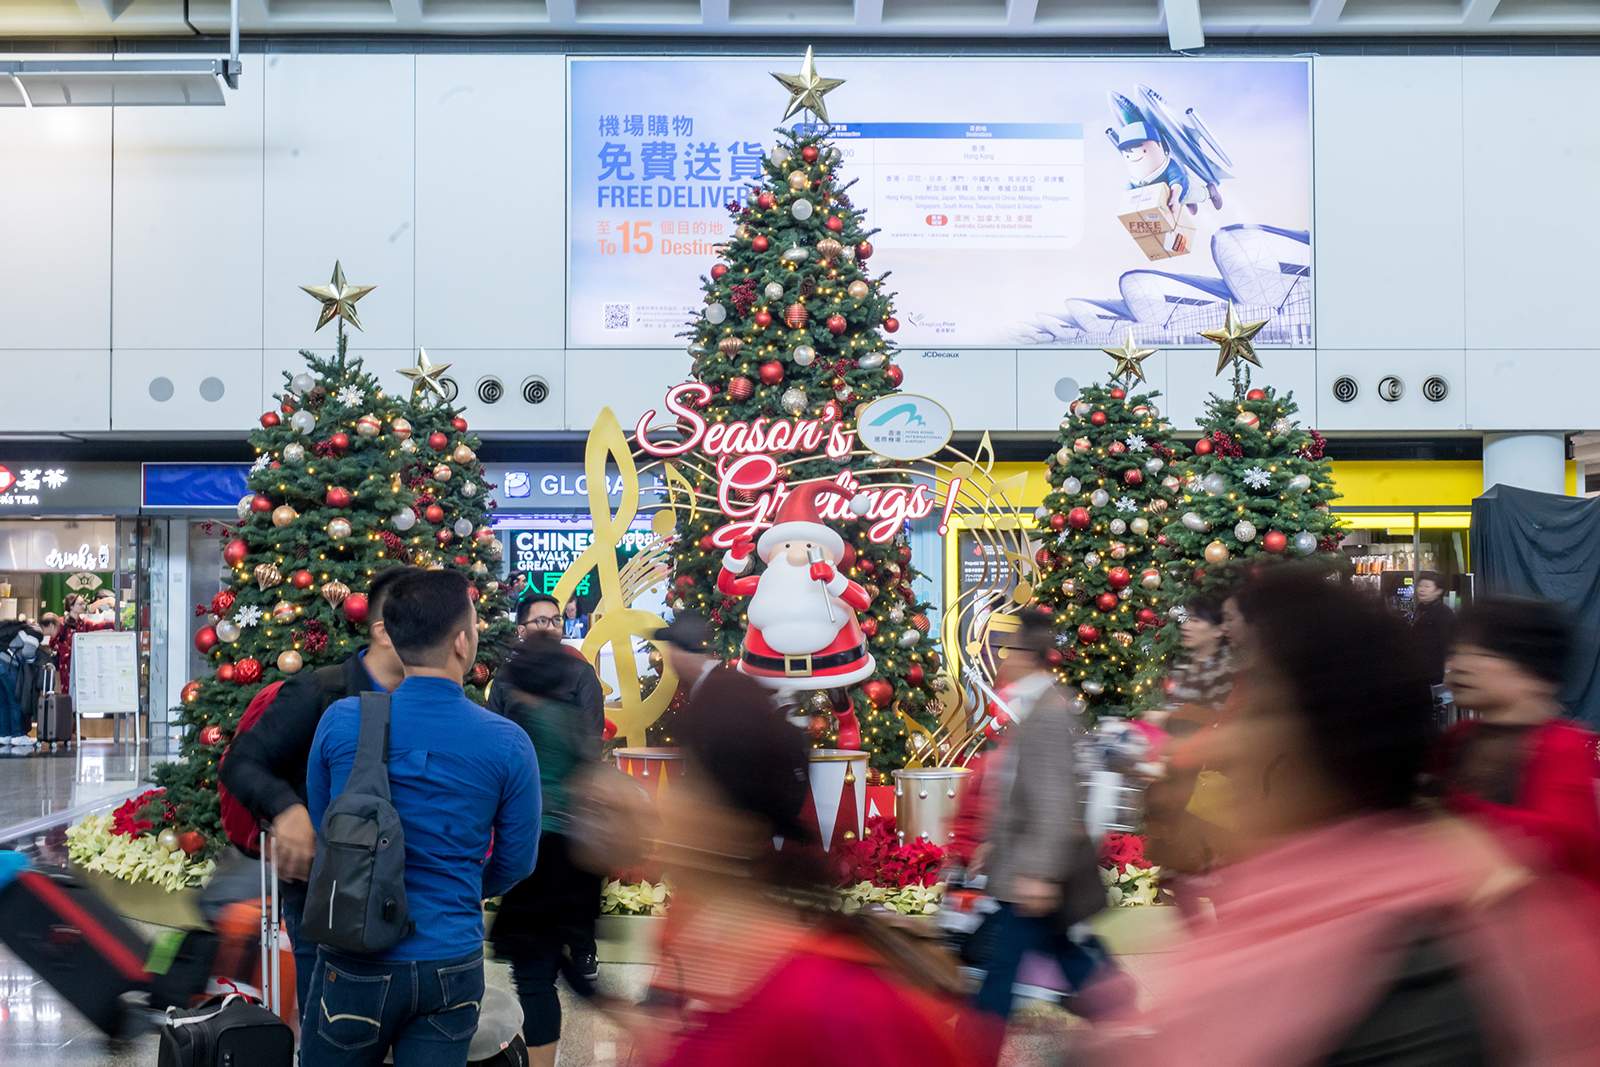 Christmas Holiday Vacation Packages 2020 2020 winter holidays: How Covid 19 might affect travel | CNN Travel